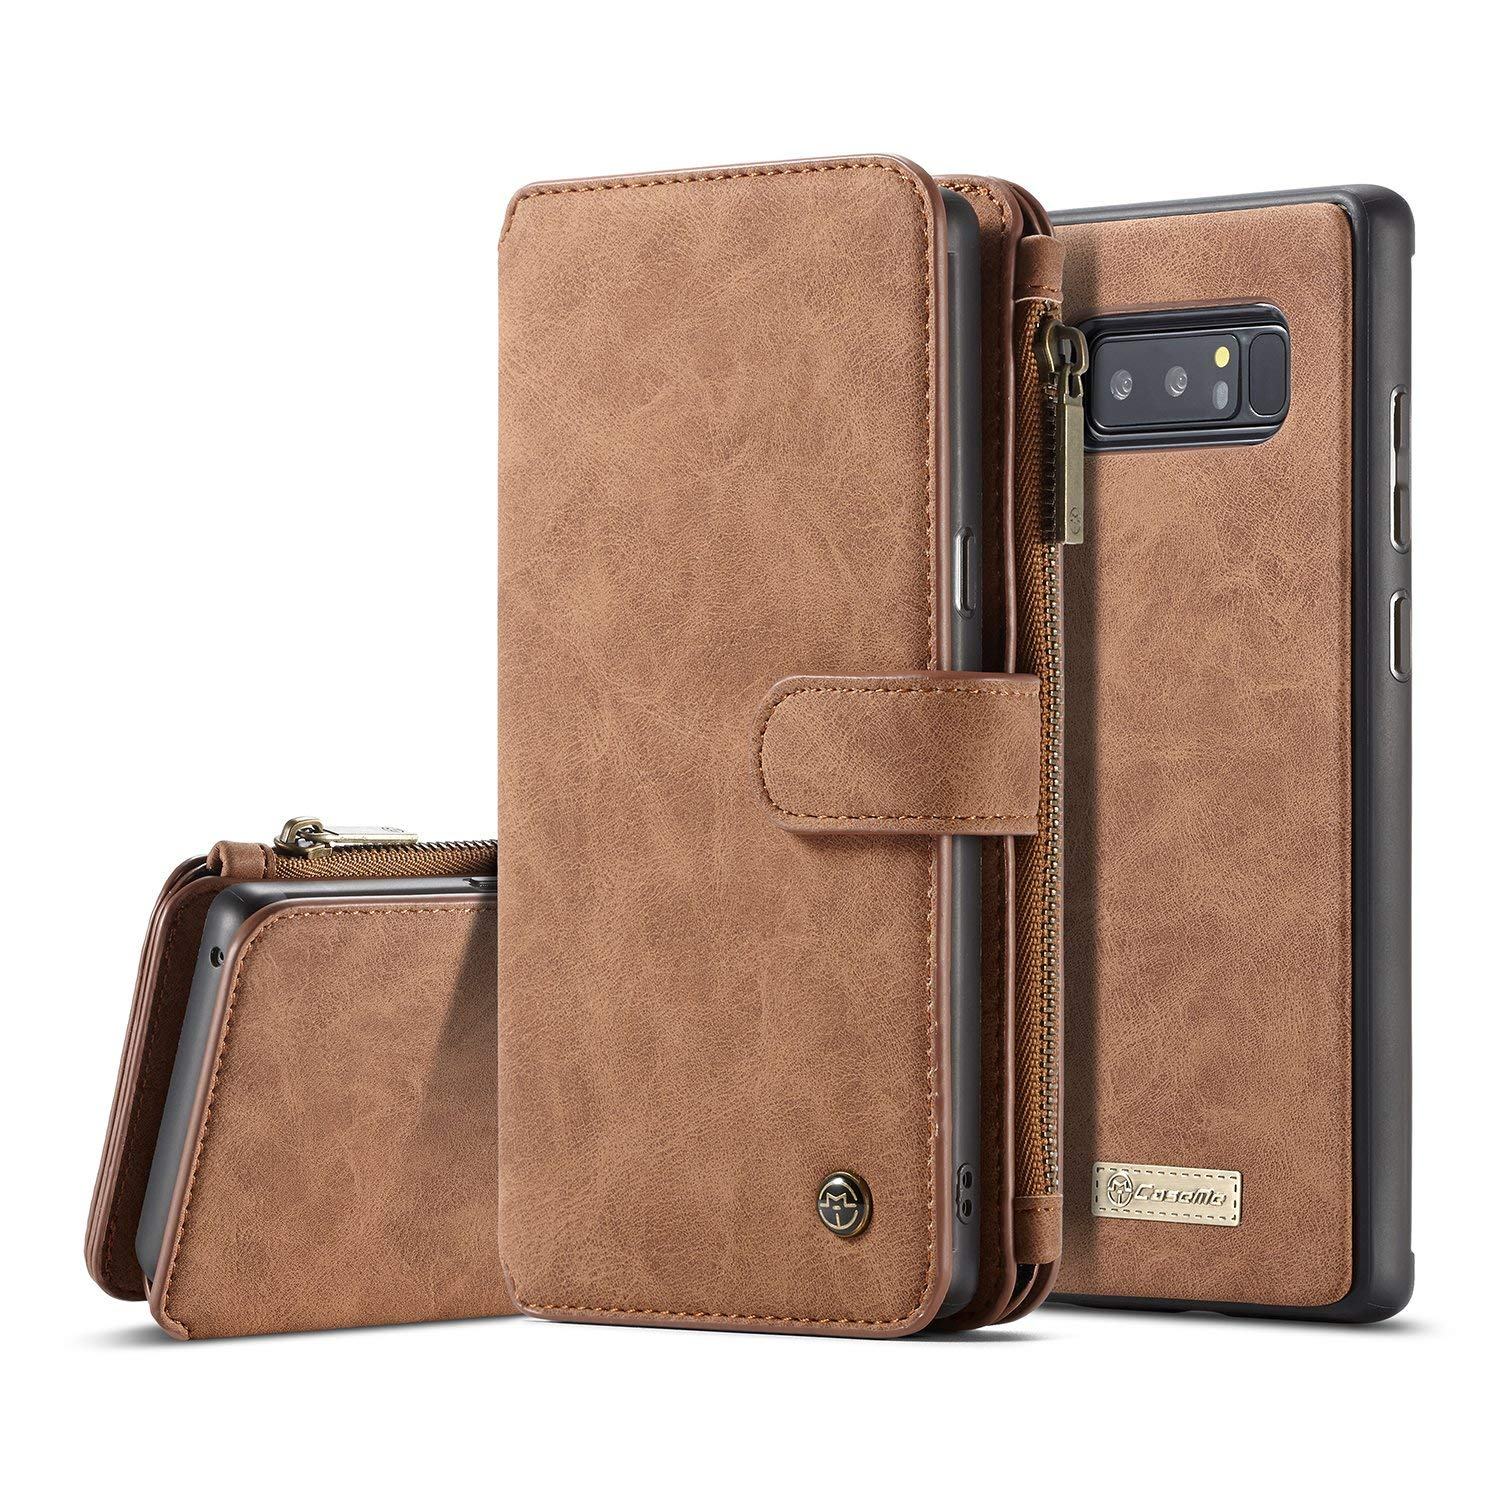 4a263aa06c6 Get Quotations · XRPow Galaxy Note 8 Magnetic Detachable Wallet Case  Premium Back Cover Slim Leather Folio Wallet Holder